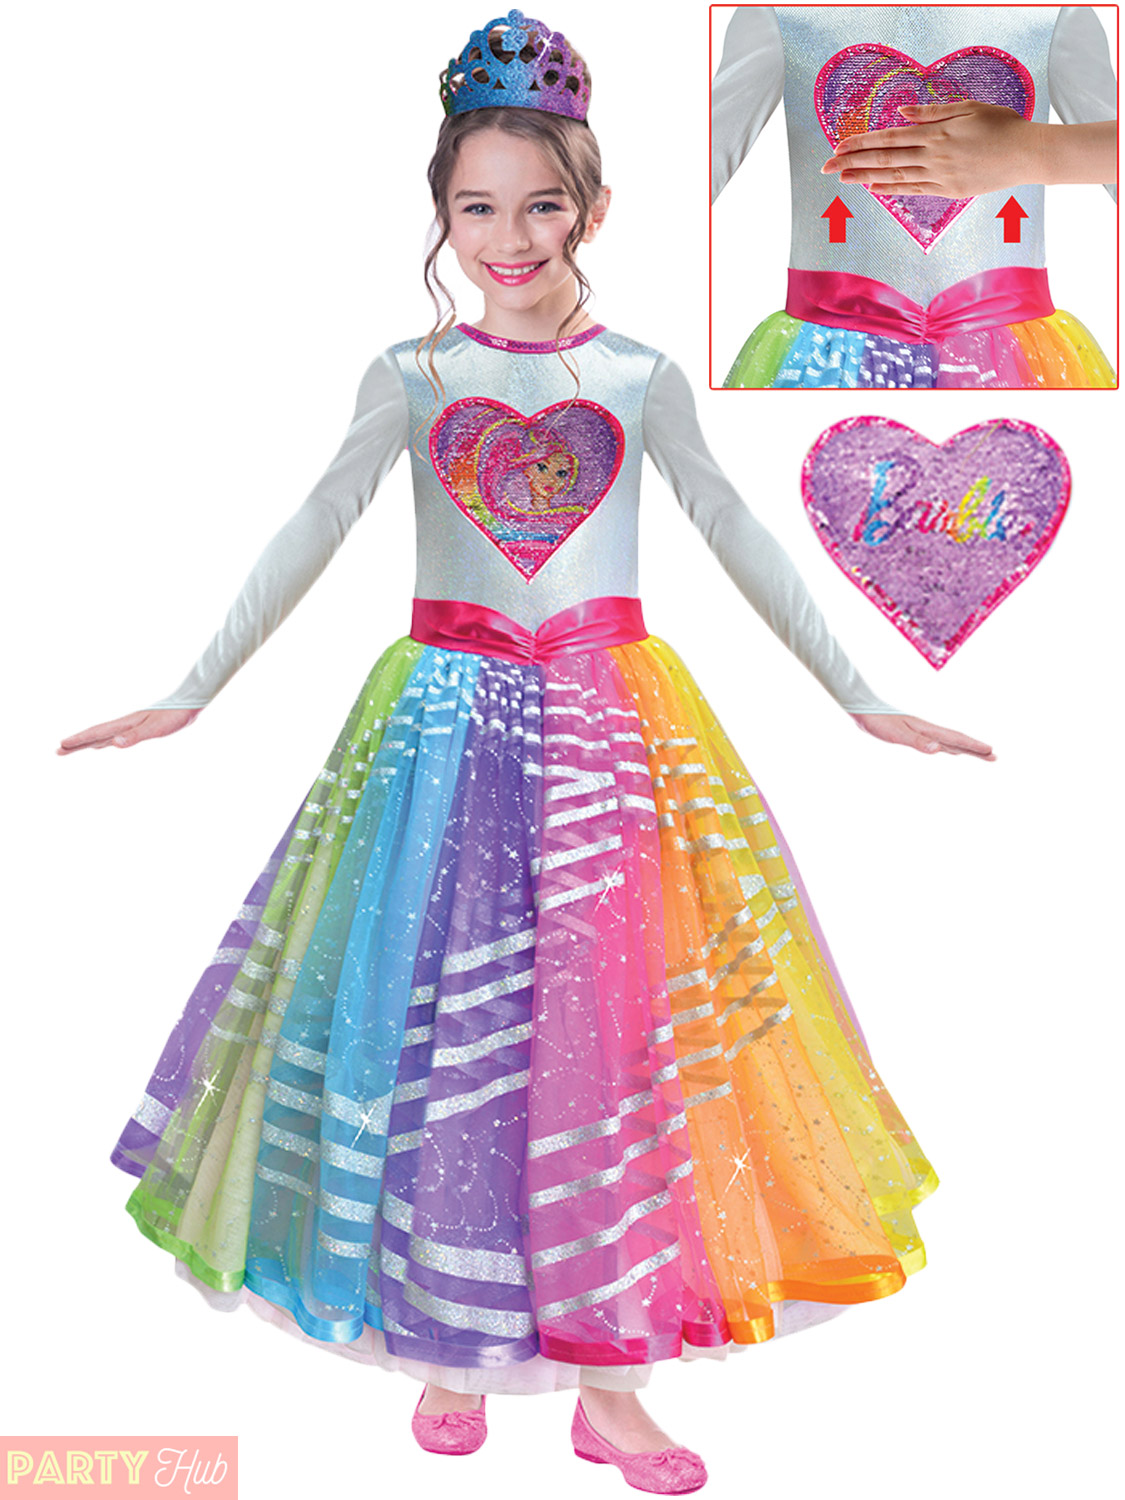 1bcac8f33367 Girls Deluxe Rainbow Magic Barbie Costume Childs Princess Fancy ...